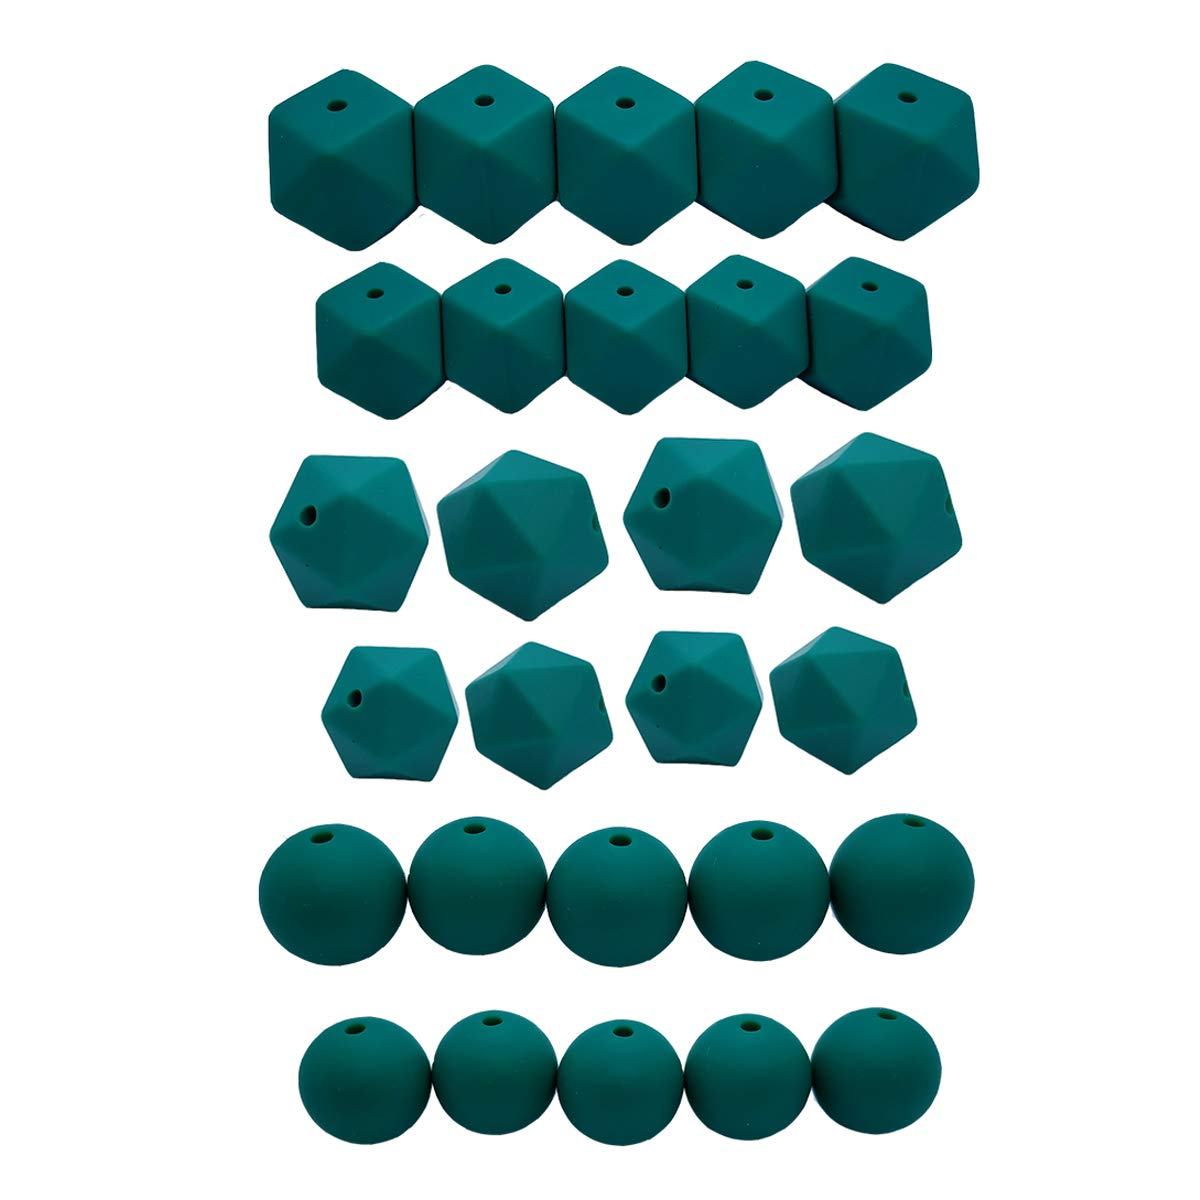 50pcs DIY Silicone Pearl Beads Set 14//17mm Hexagon Icosahedron 12//15mm Round Beads Mom Care Necklace Making Maroon